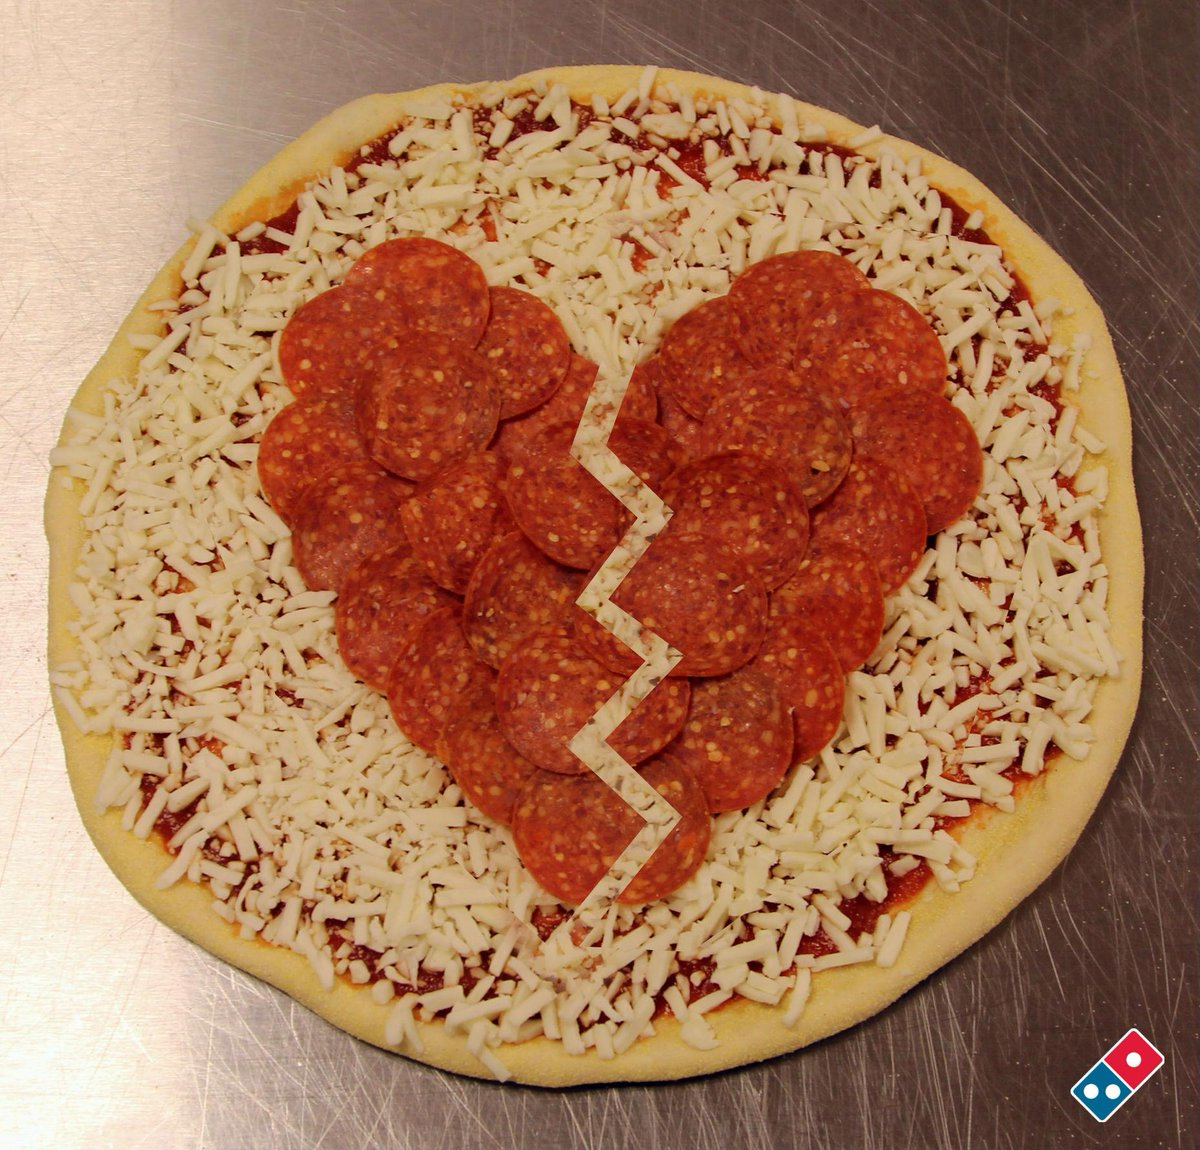 That moment when even pizza won't cure your #ZaynPain. http://t.co/k4B1ILmEZ1